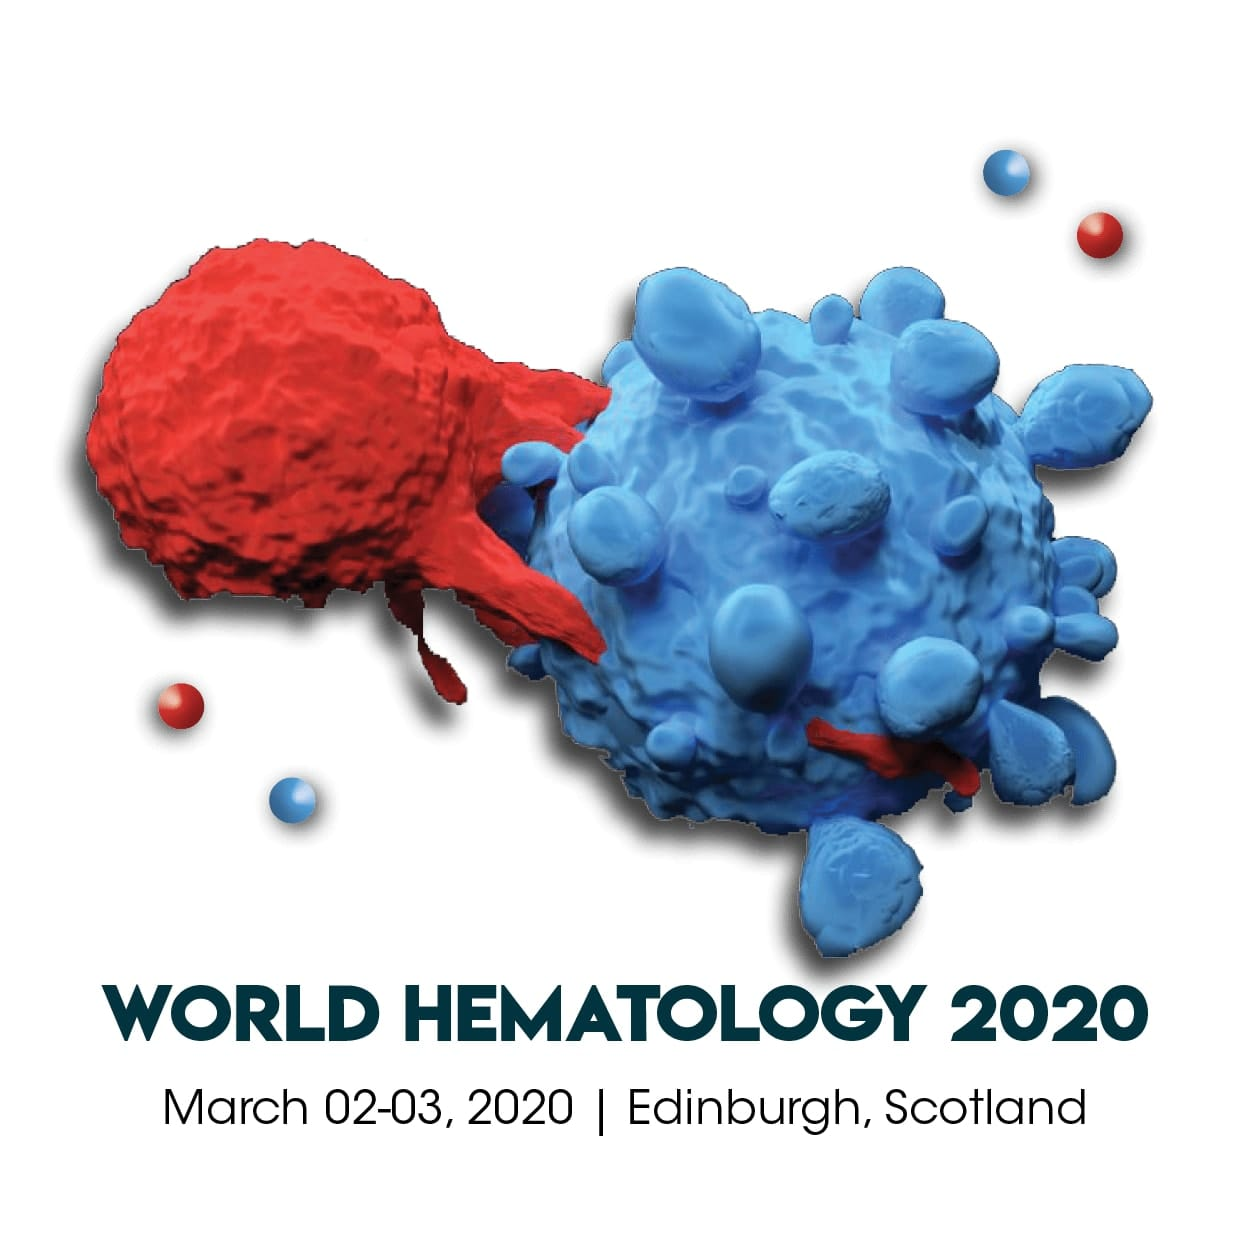 Hematology Conferences | World Hematology 2020 | Oncology